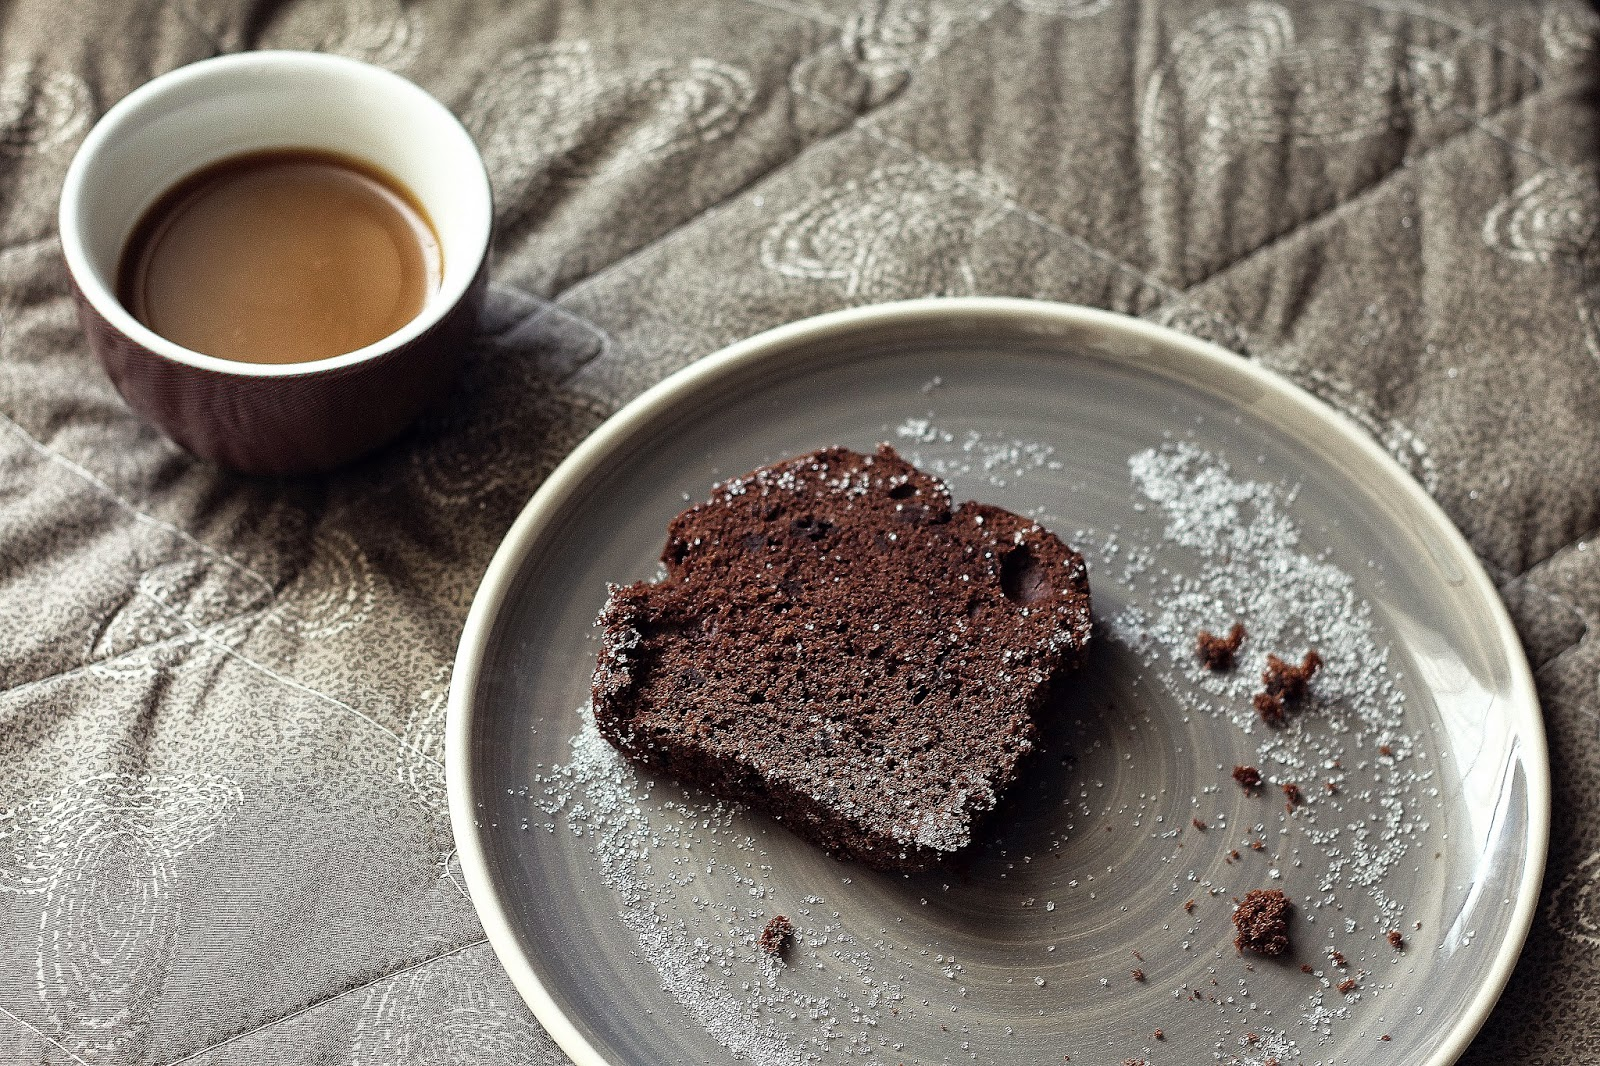 chocolate cake and cup of coffee